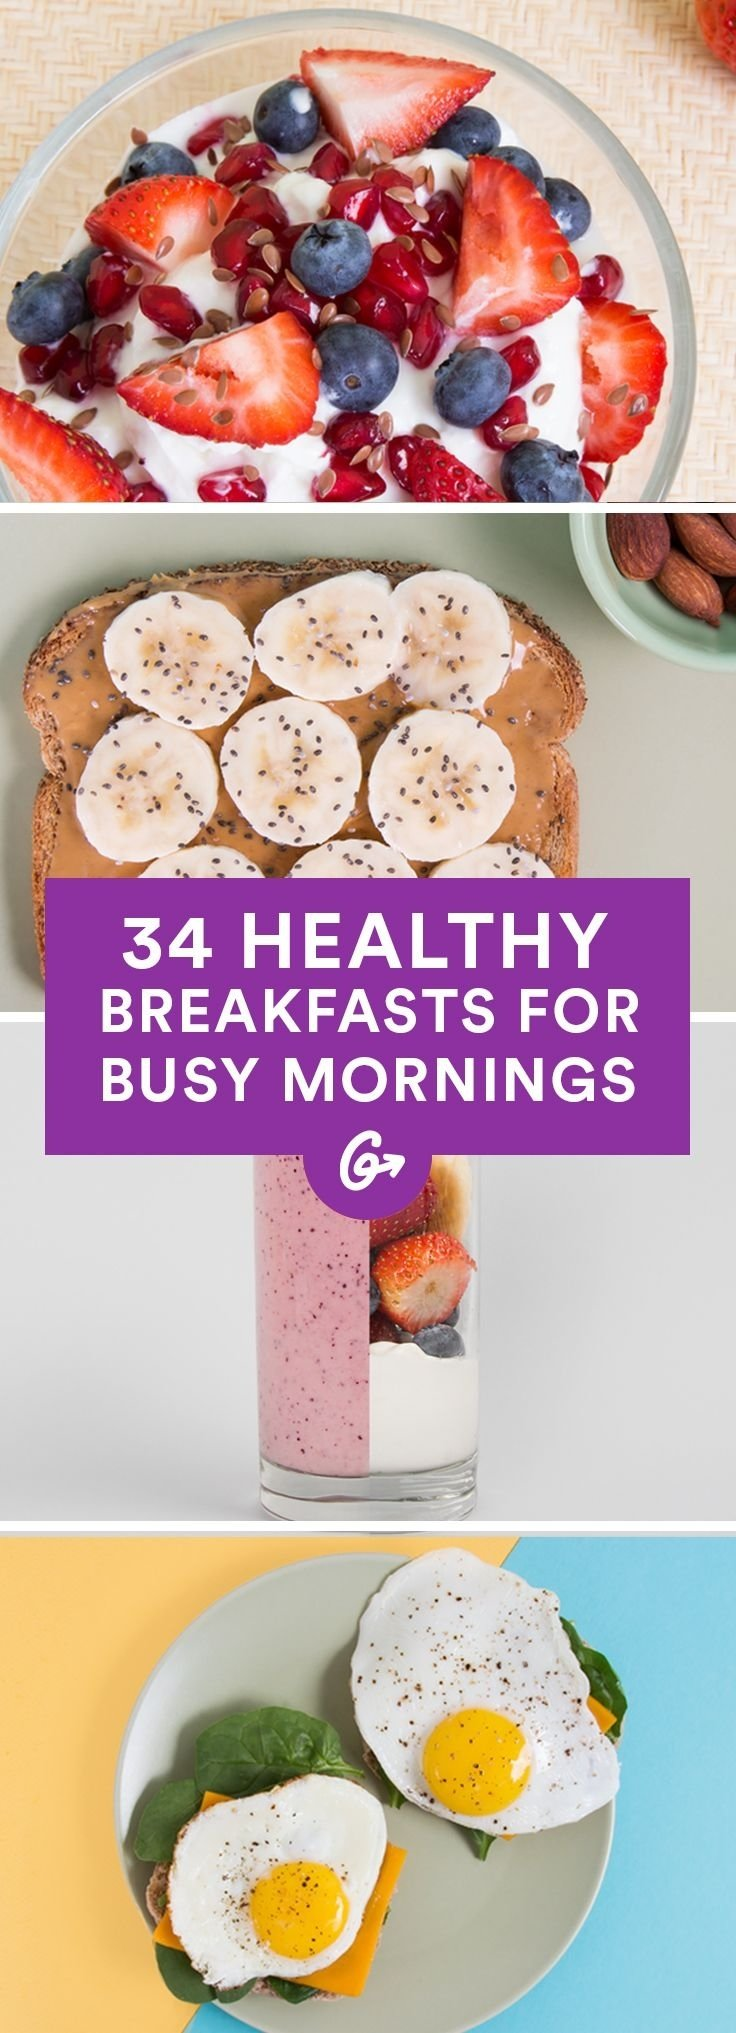 10 Famous Fast And Easy Breakfast Ideas 39 healthy breakfasts for busy mornings healthy breakfasts 1 2020